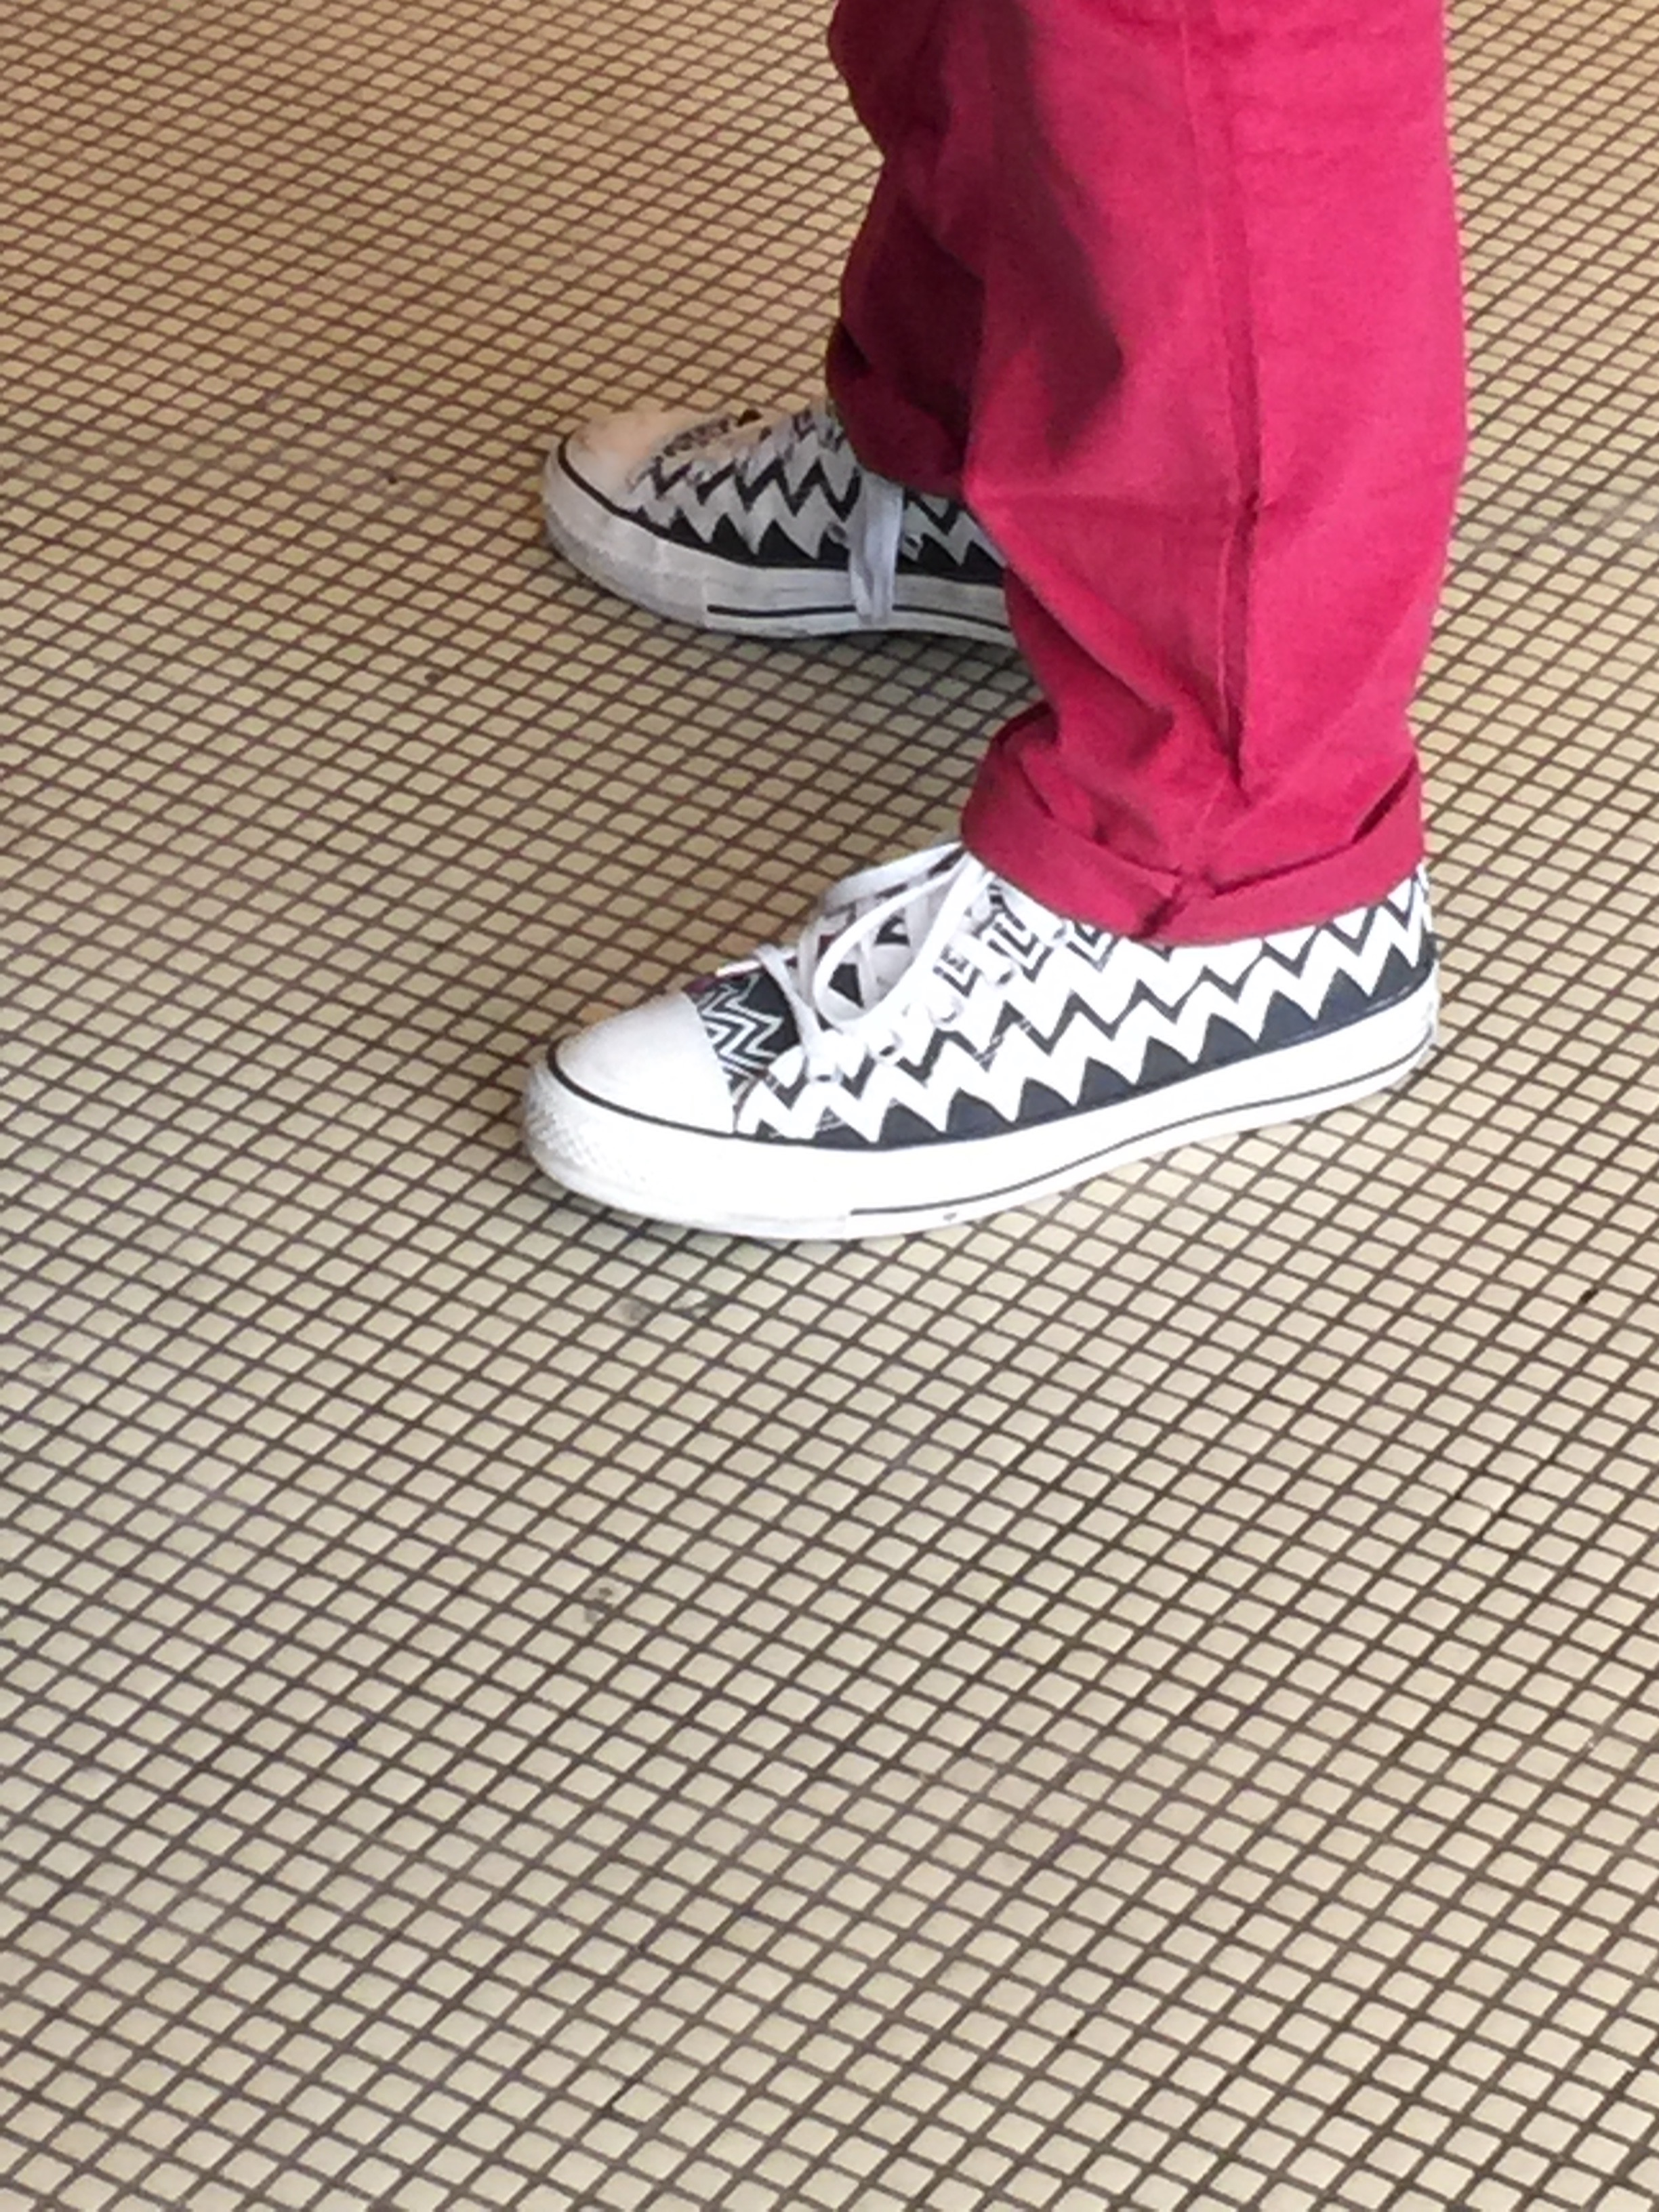 Even His Sneaks...